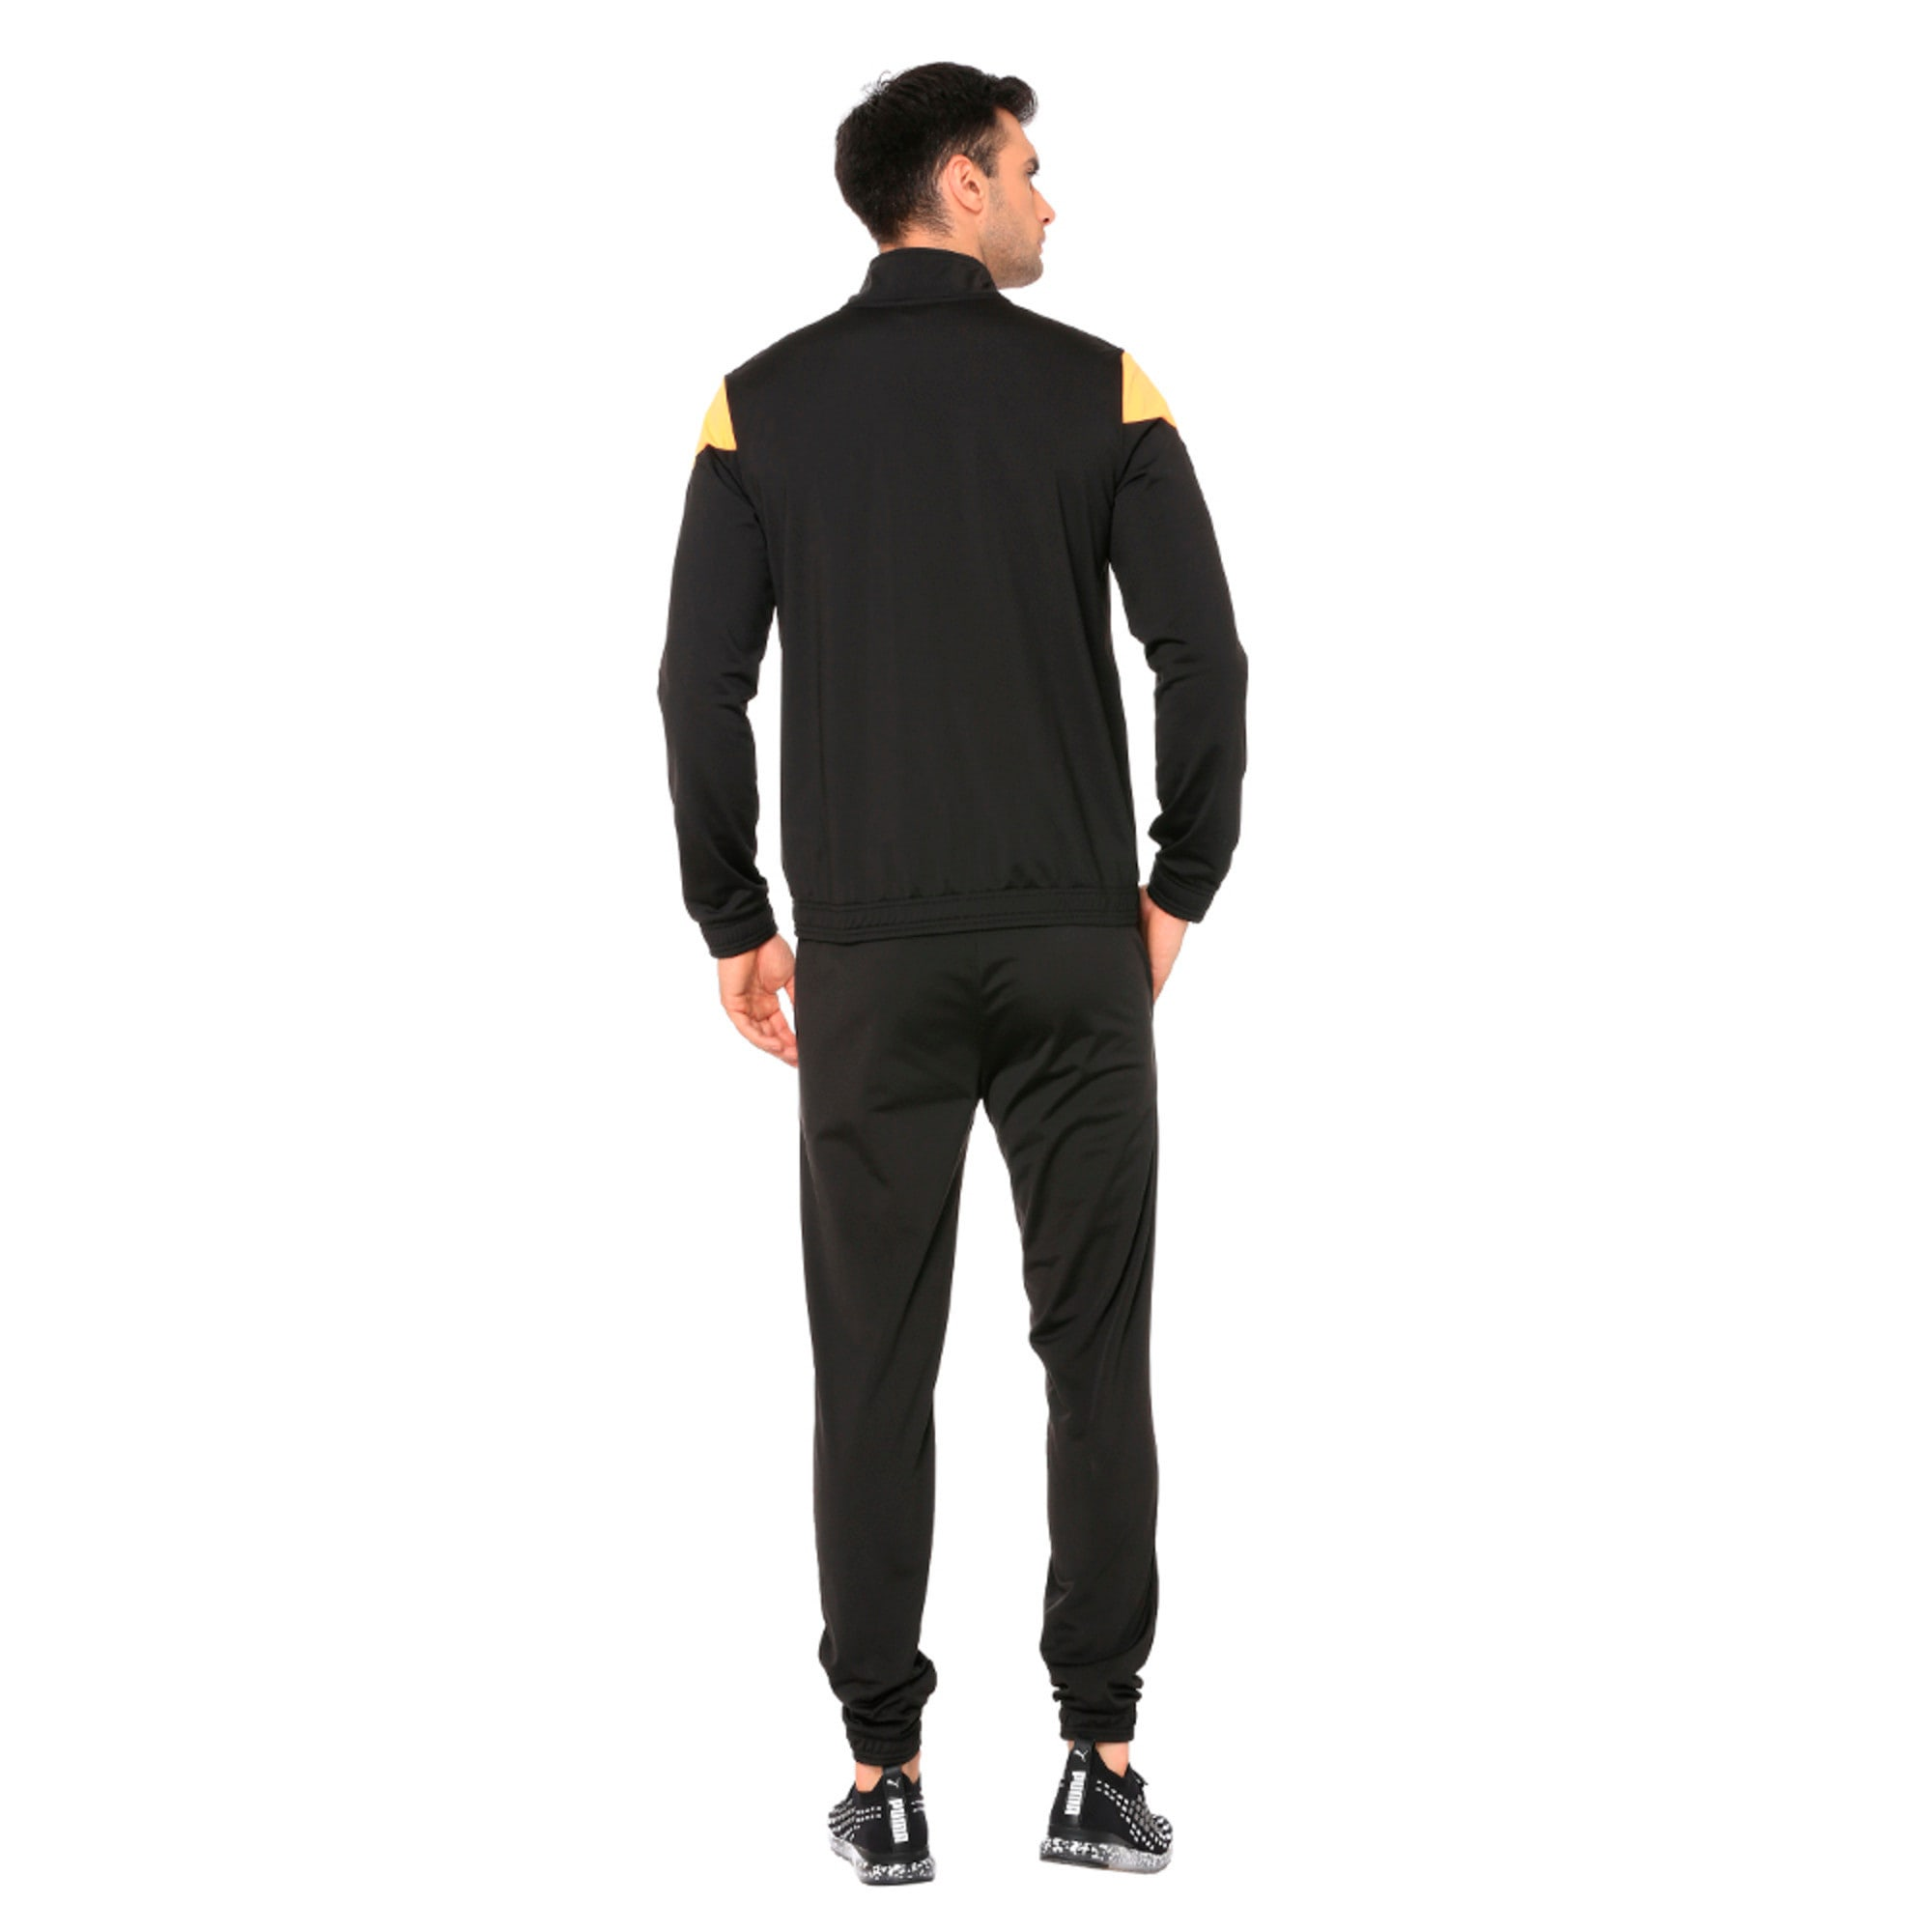 Thumbnail 2 of Clean Tricot Men's Track Suit, Puma Black, medium-IND